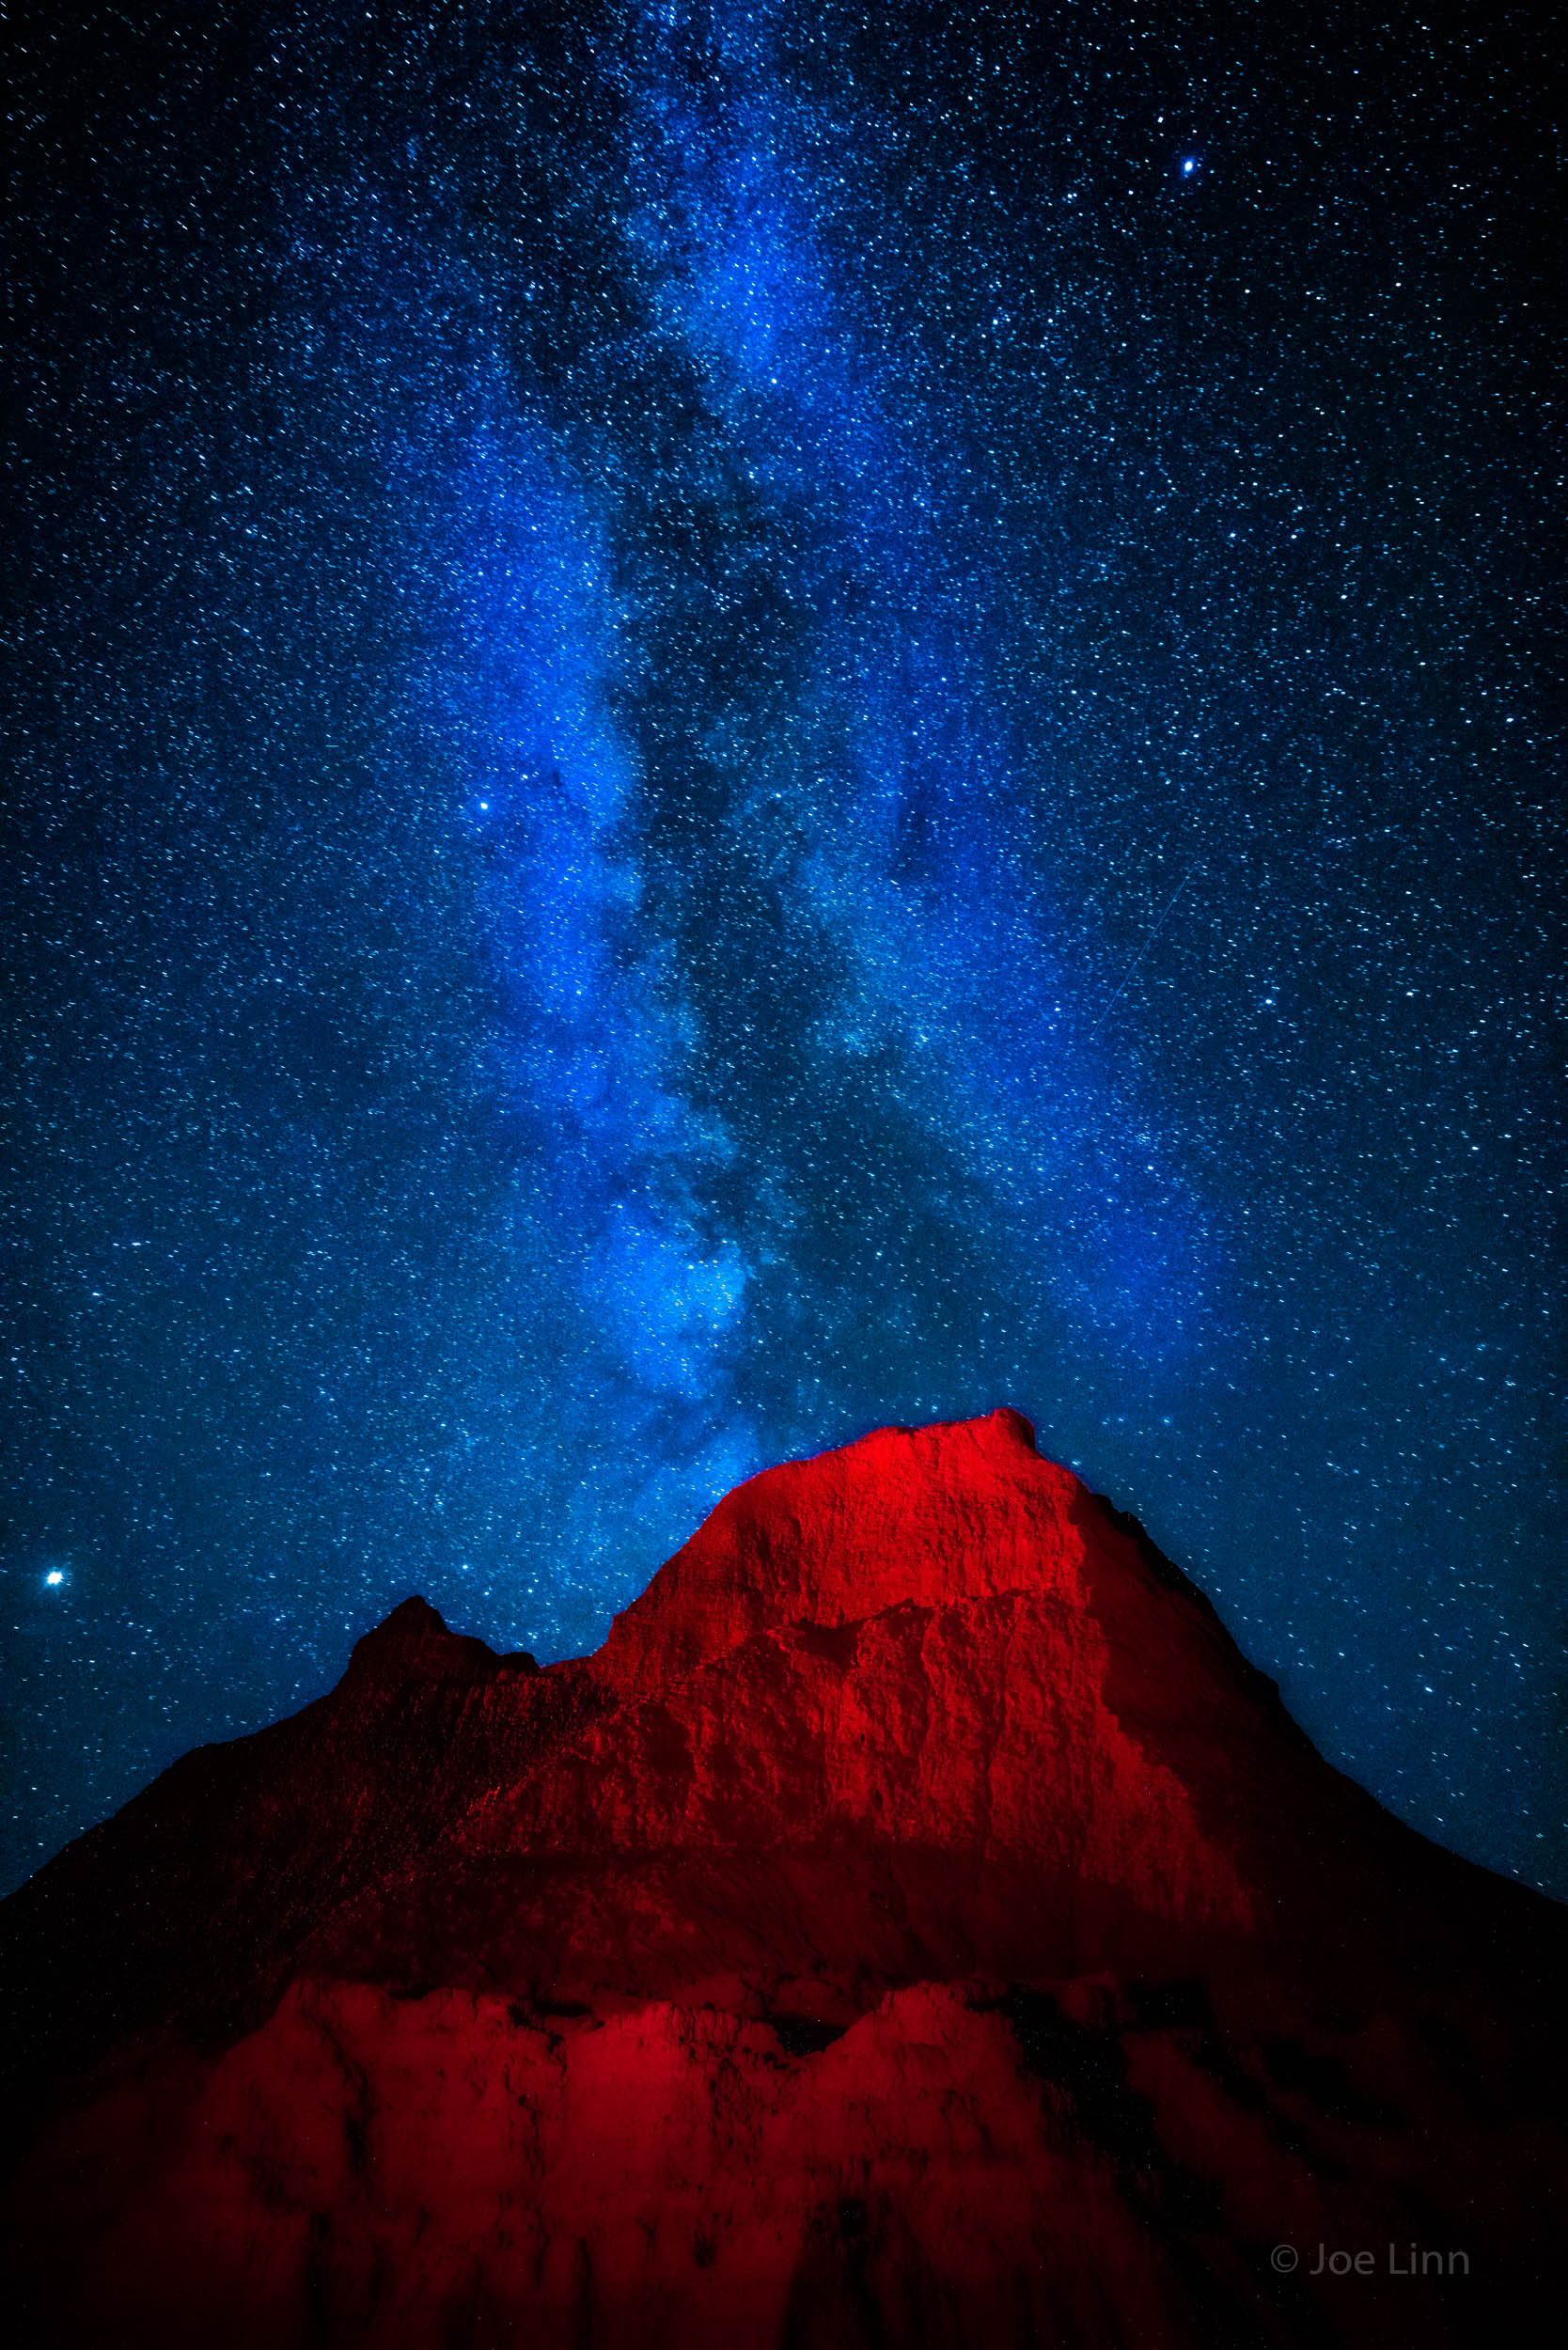 Milky Way and a Red Flashlight